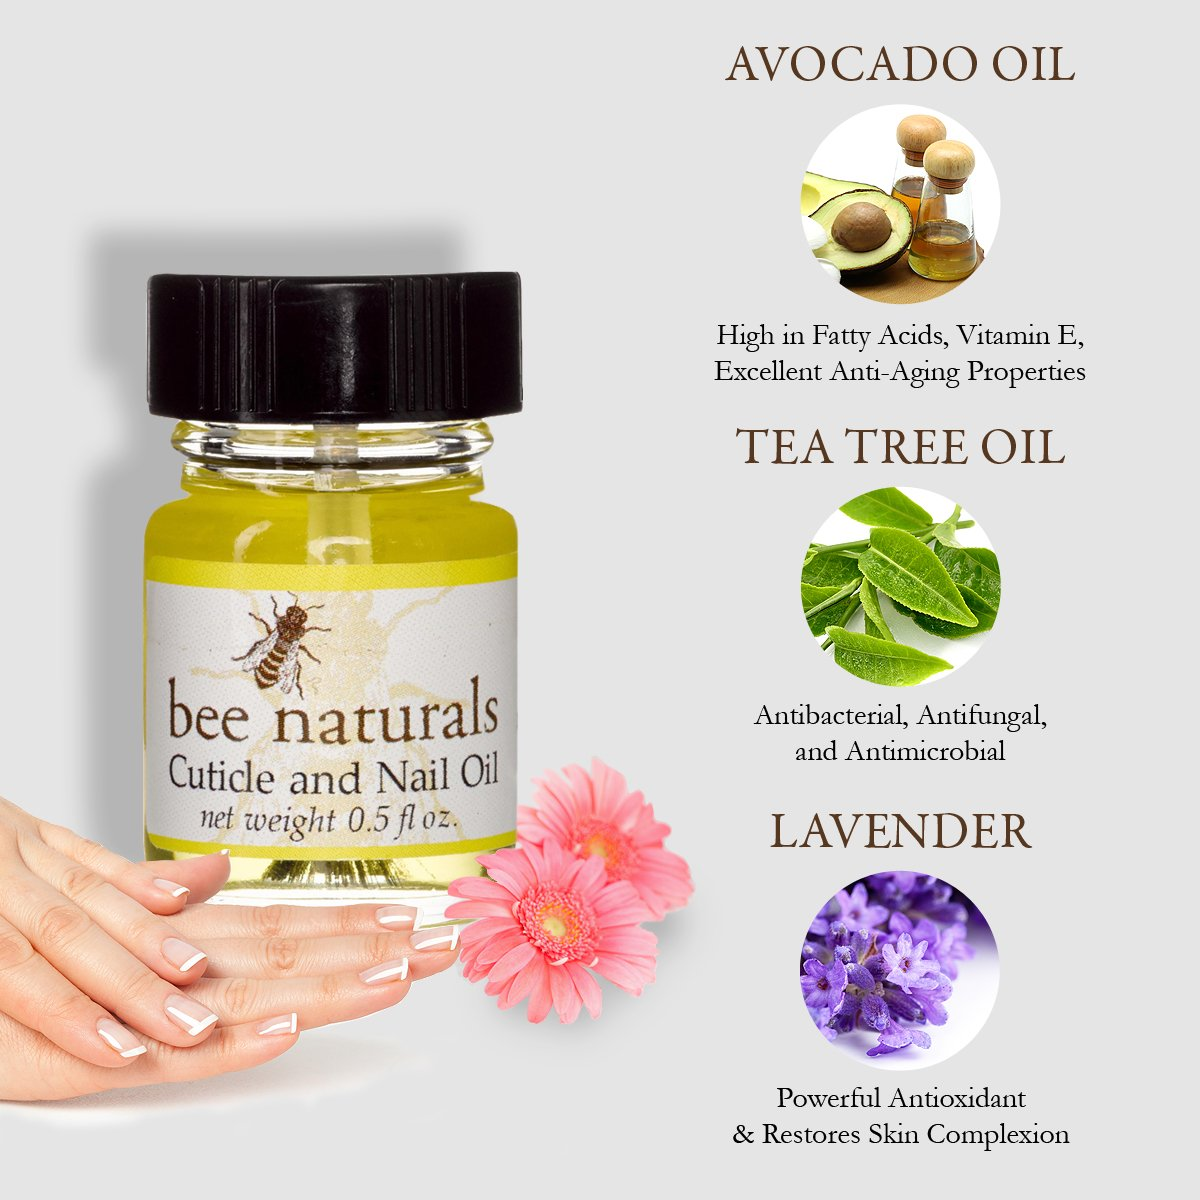 Amazon.com: Bee Natural Best Cuticle Oil - Nail Oil Helps All ...